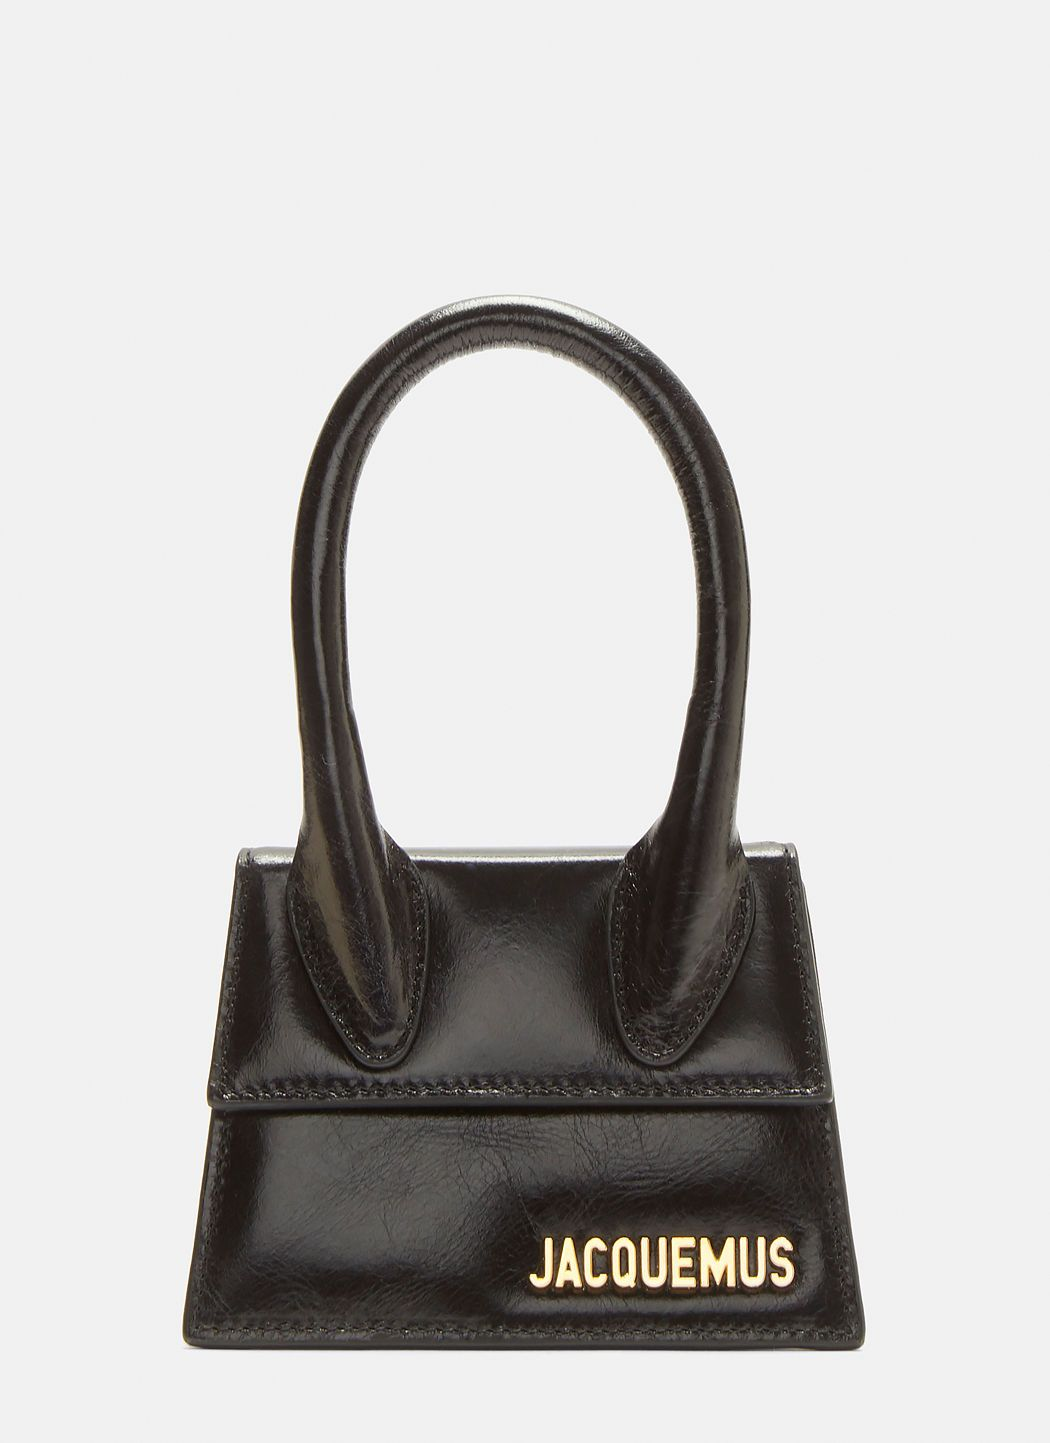 0eff245267e4 JACQUEMUS Le Sac Chiquito in Black.  jacquemus  bags  shoulder bags  leather